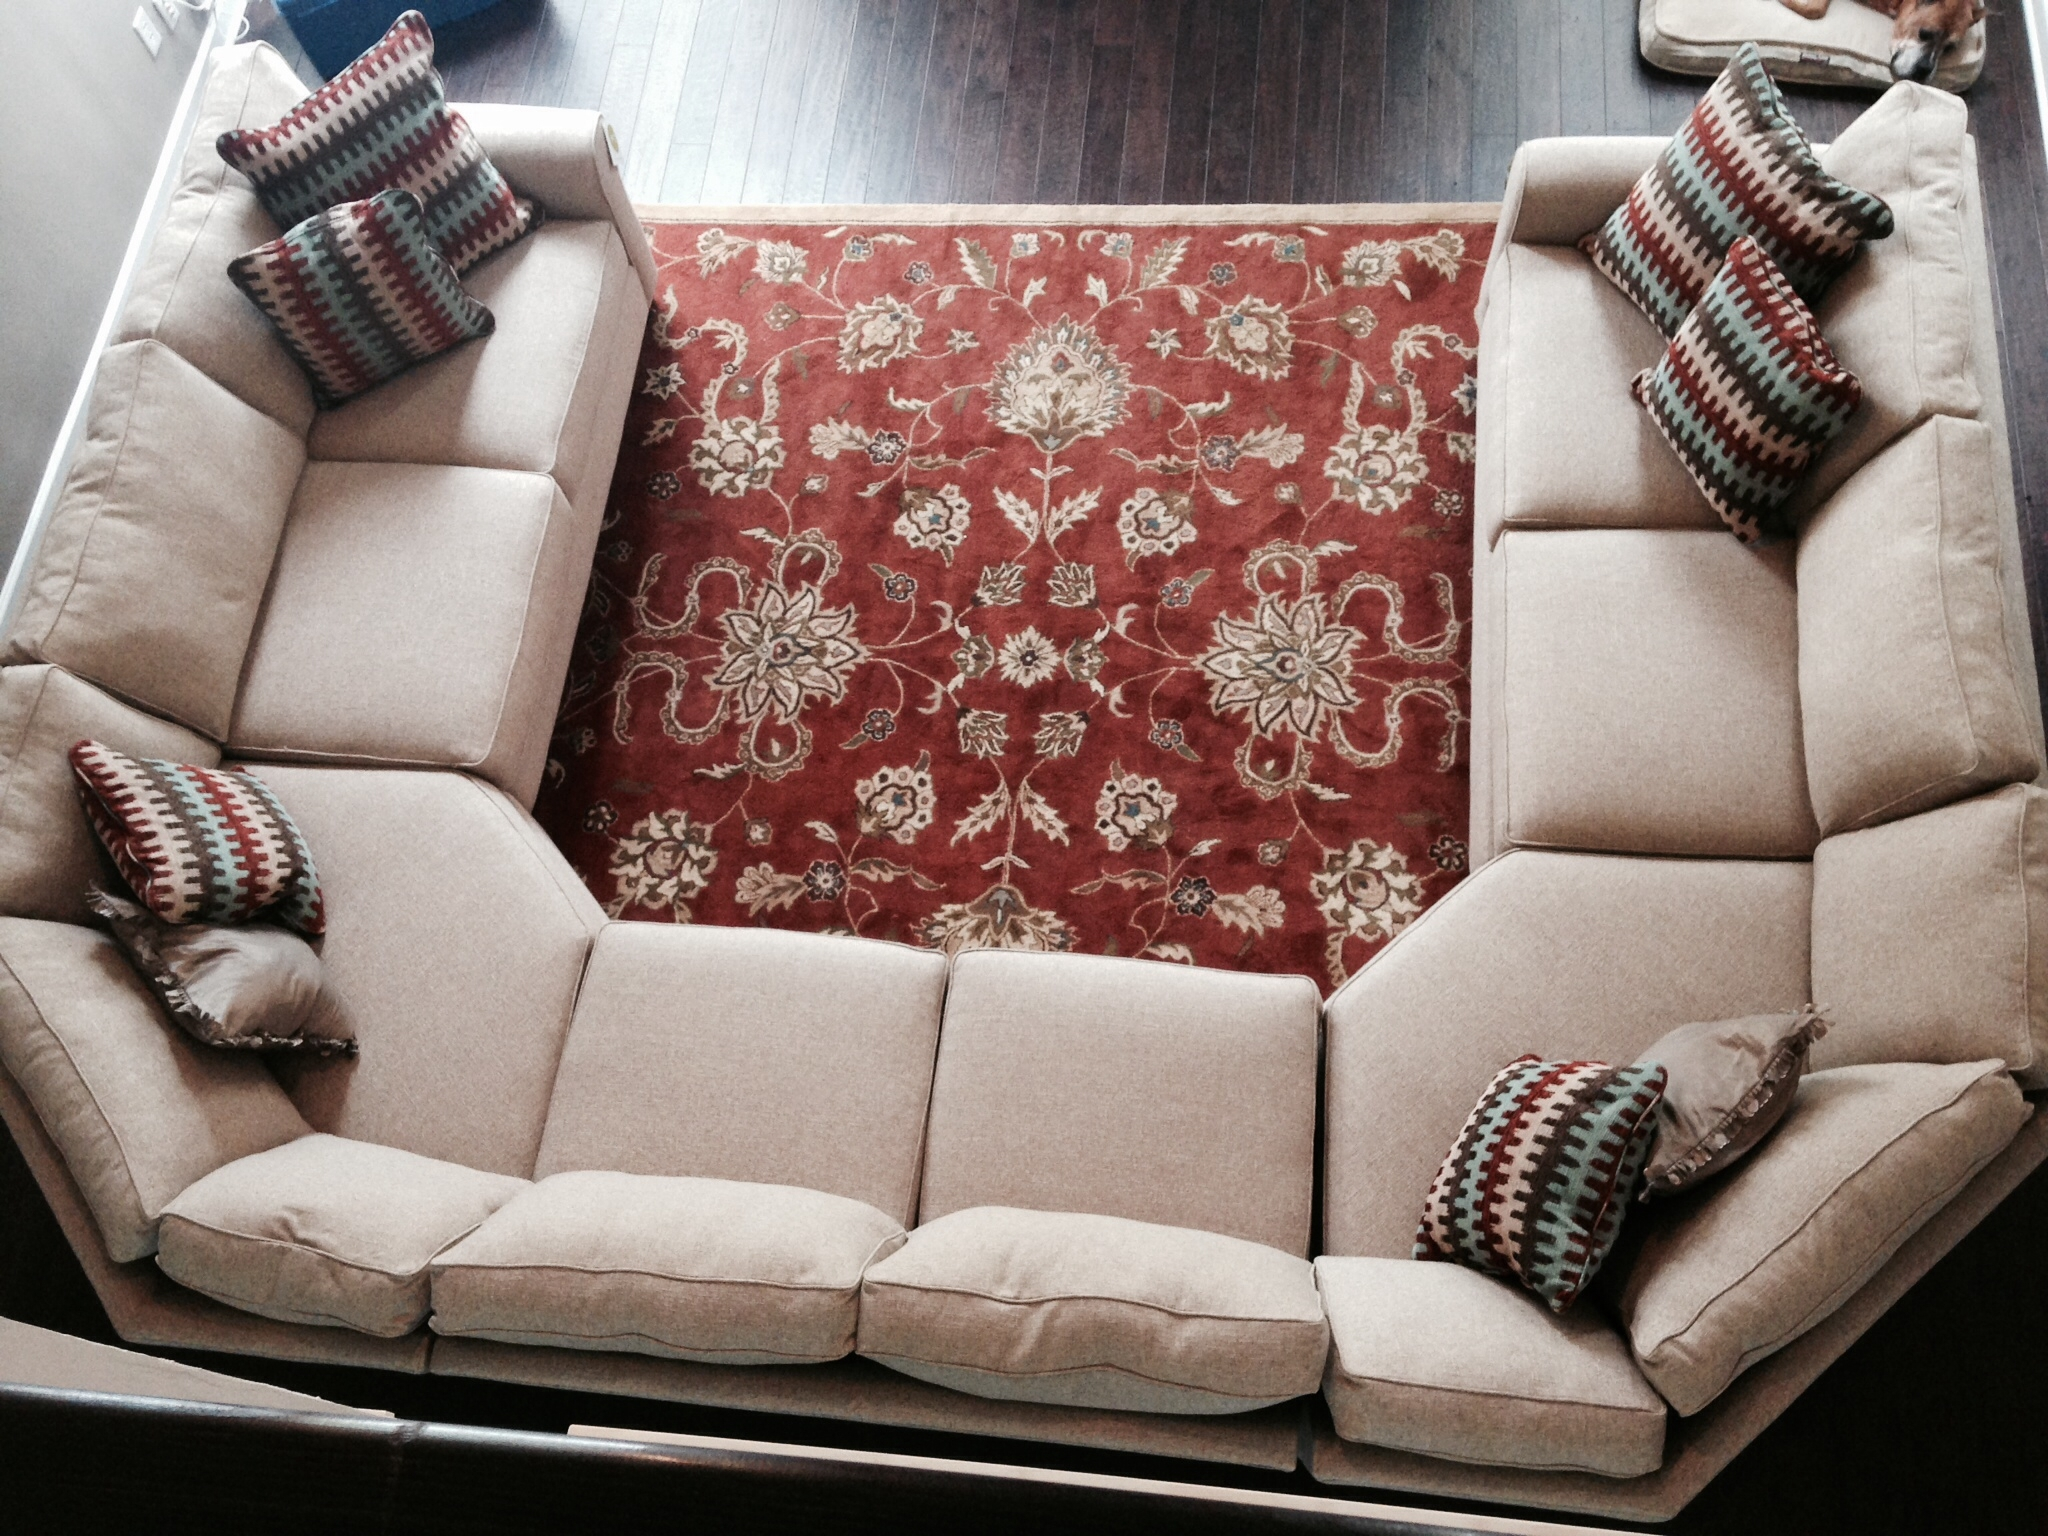 Sectional Sofa Design: Adorable Large U Shaped Sectional Sofa Small Within Big U Shaped Couches (View 5 of 10)